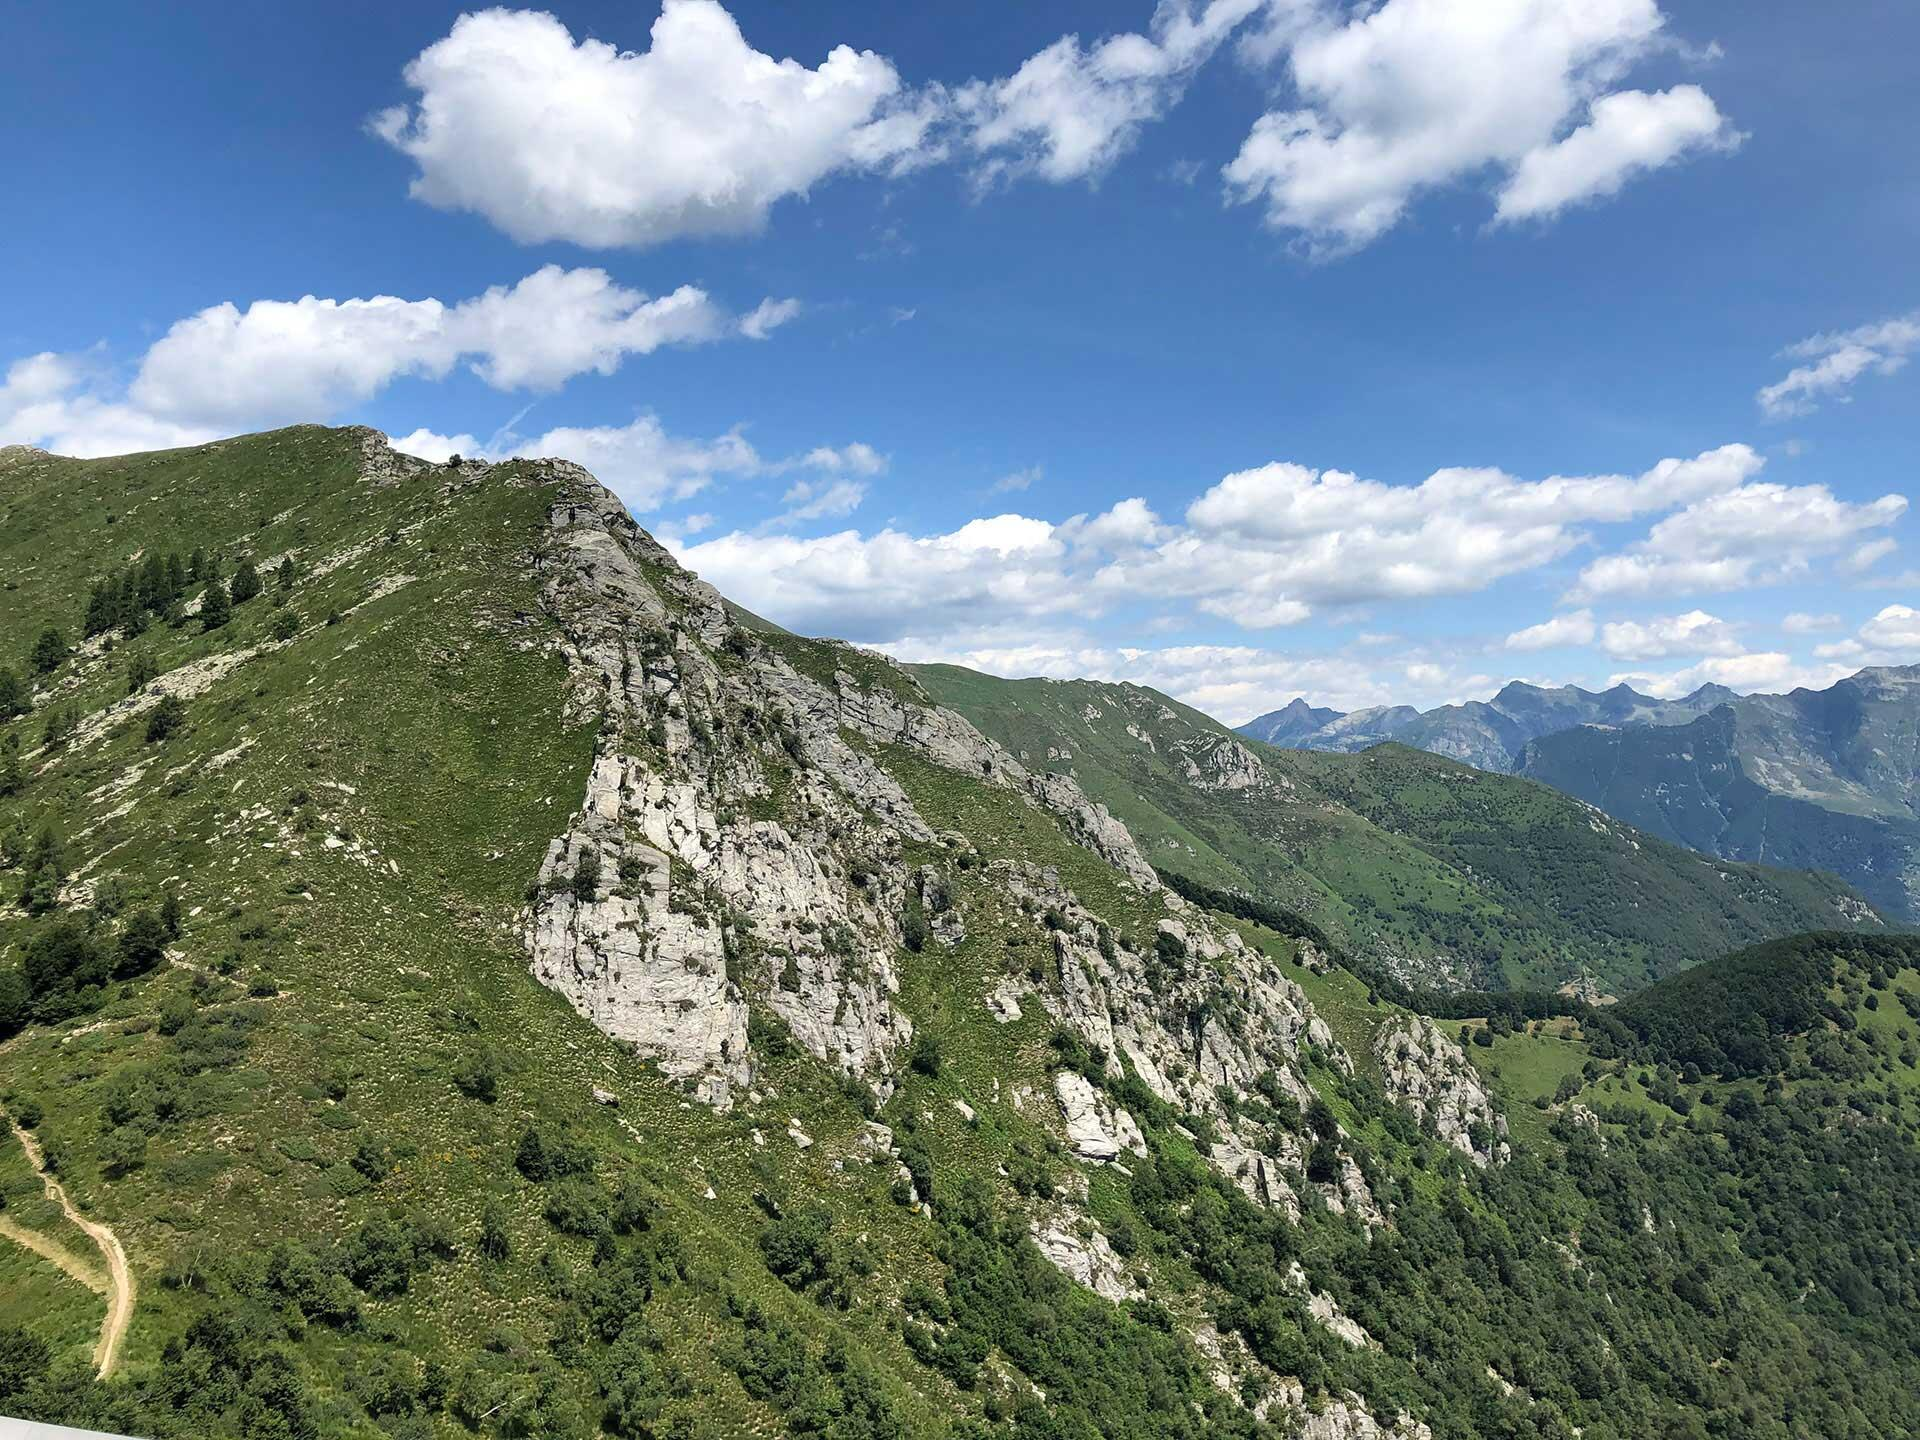 Top of Ticino